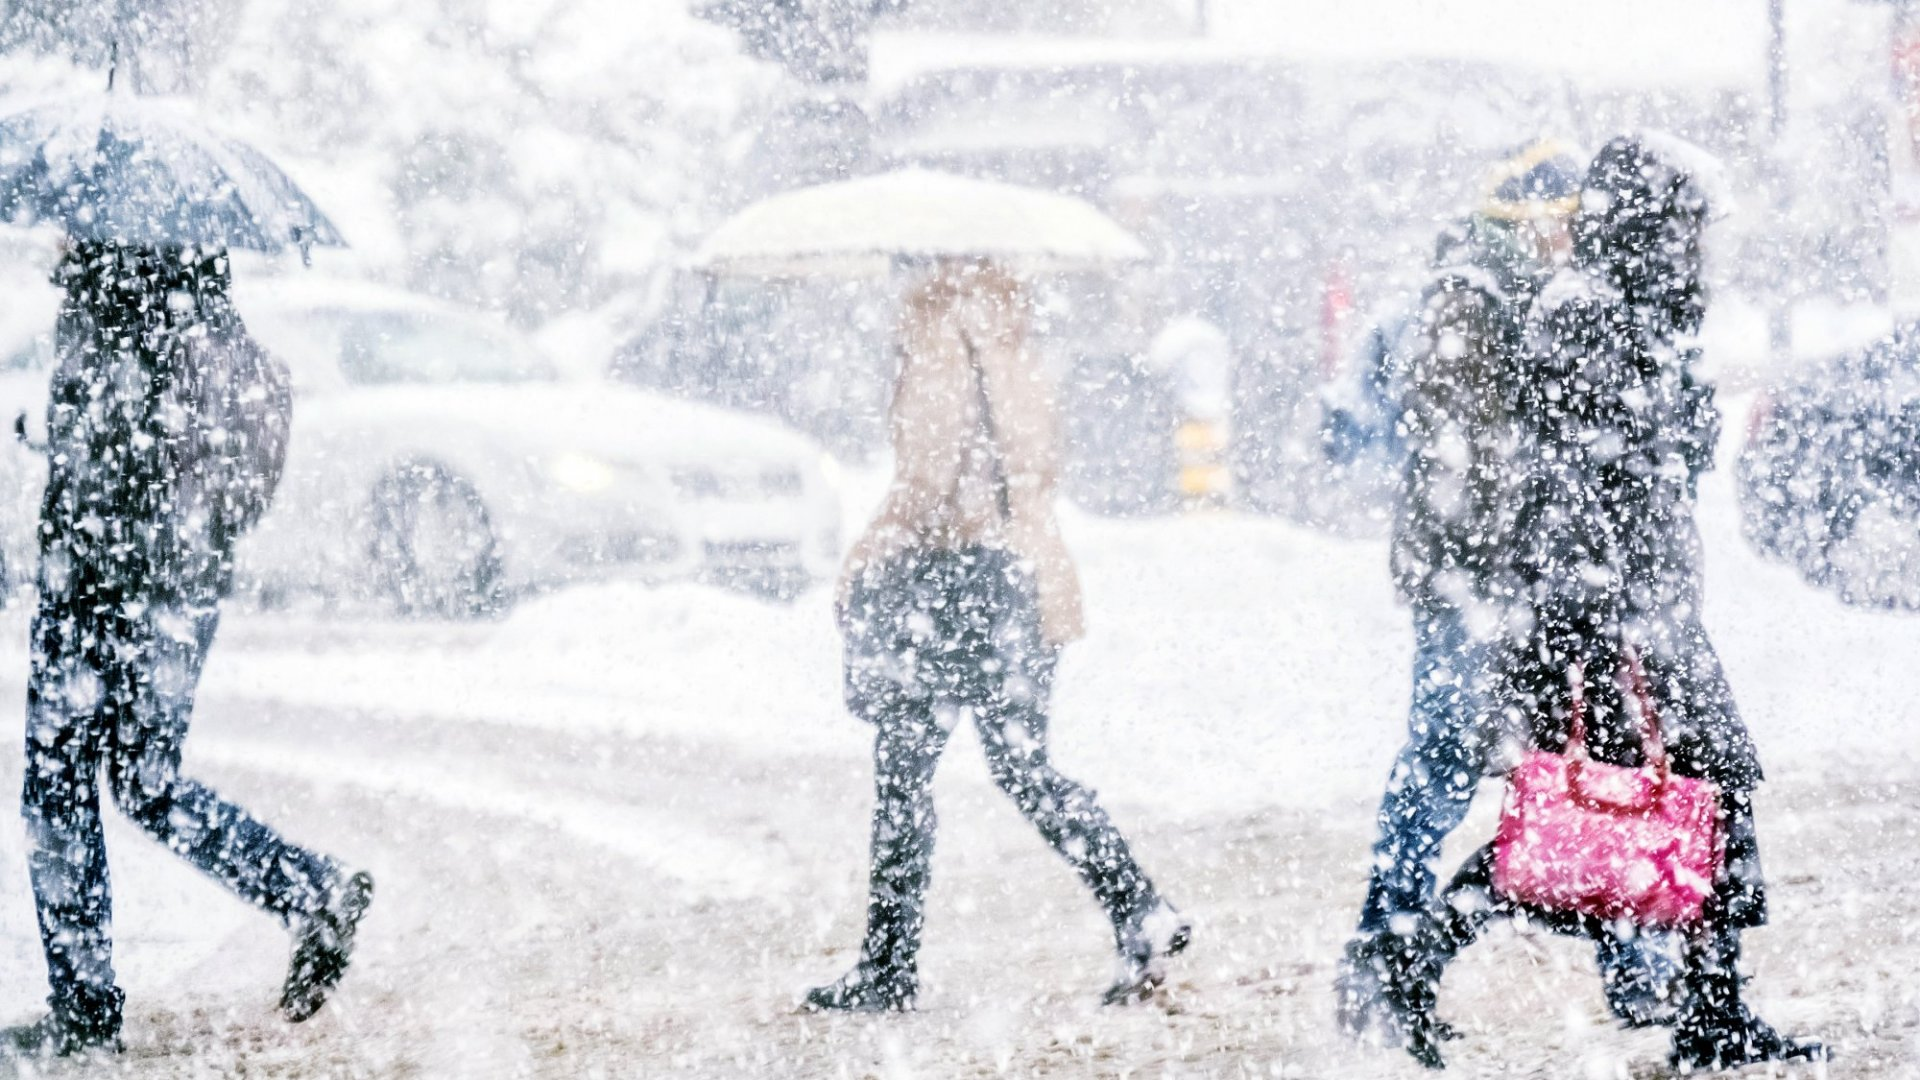 How Should Companies Handle Snow Days?